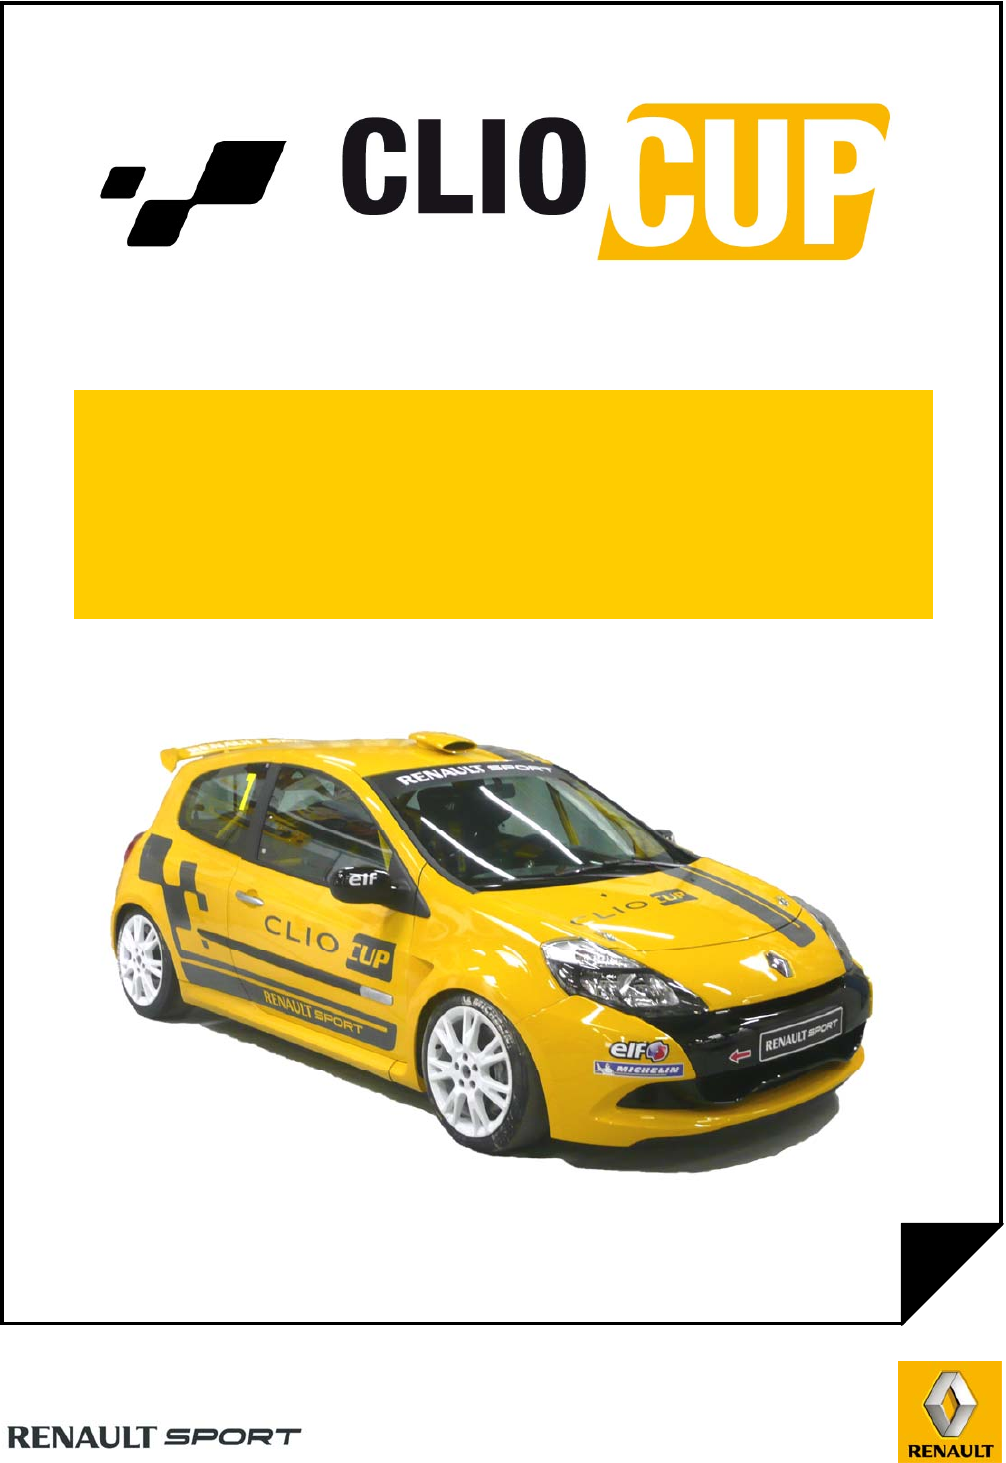 Renault Clio Cup Users Manual Manualslib Makes It Easy To Find Manuals Online